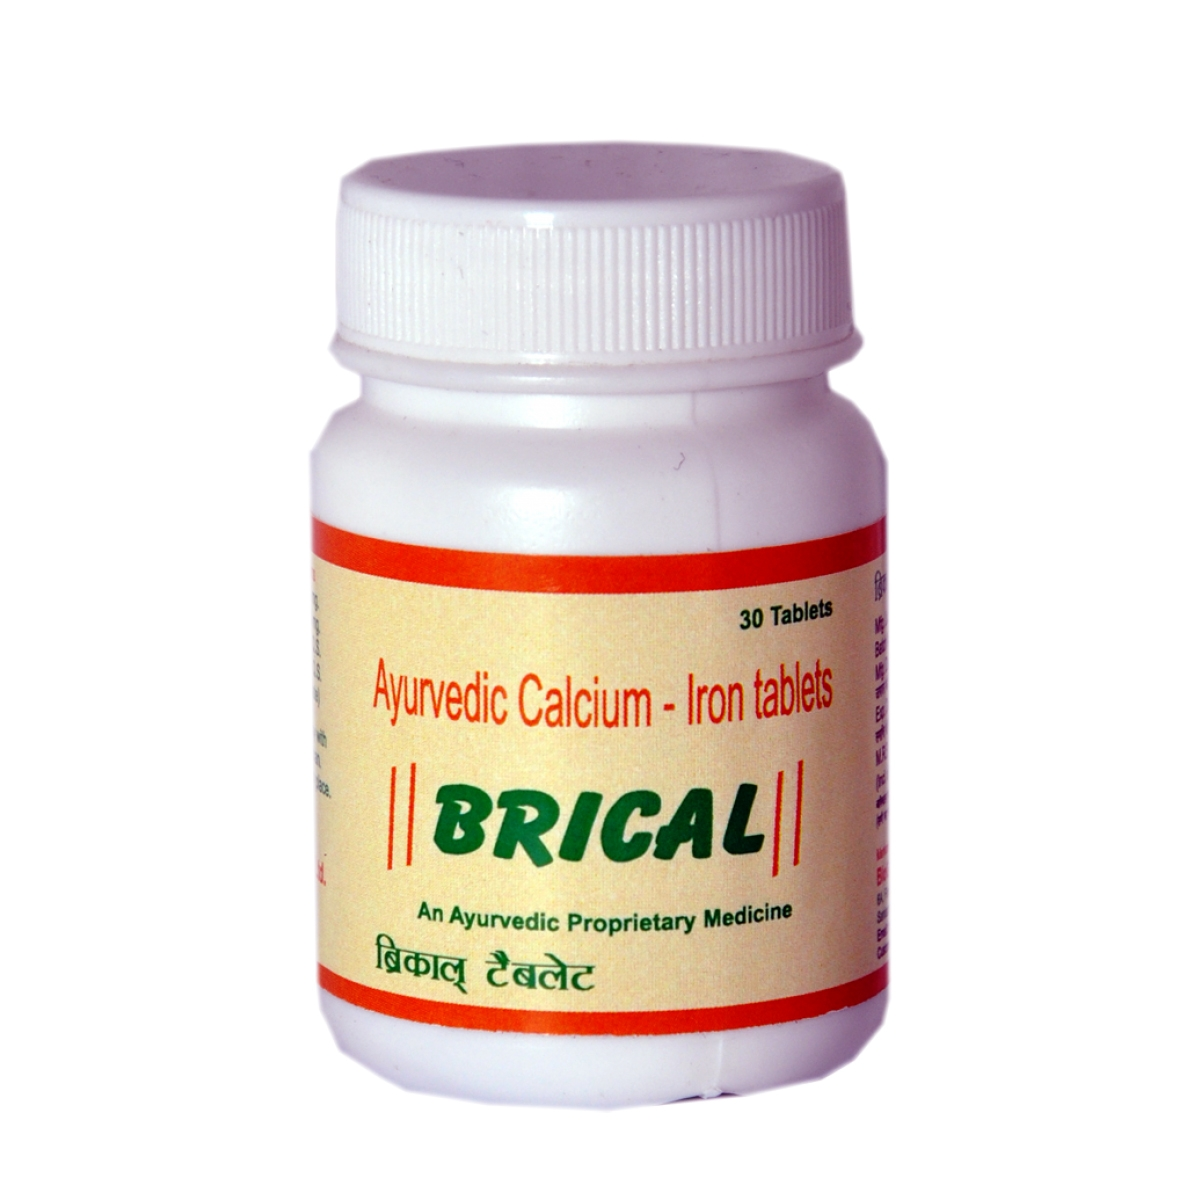 Brical Tablets In Meghalaya